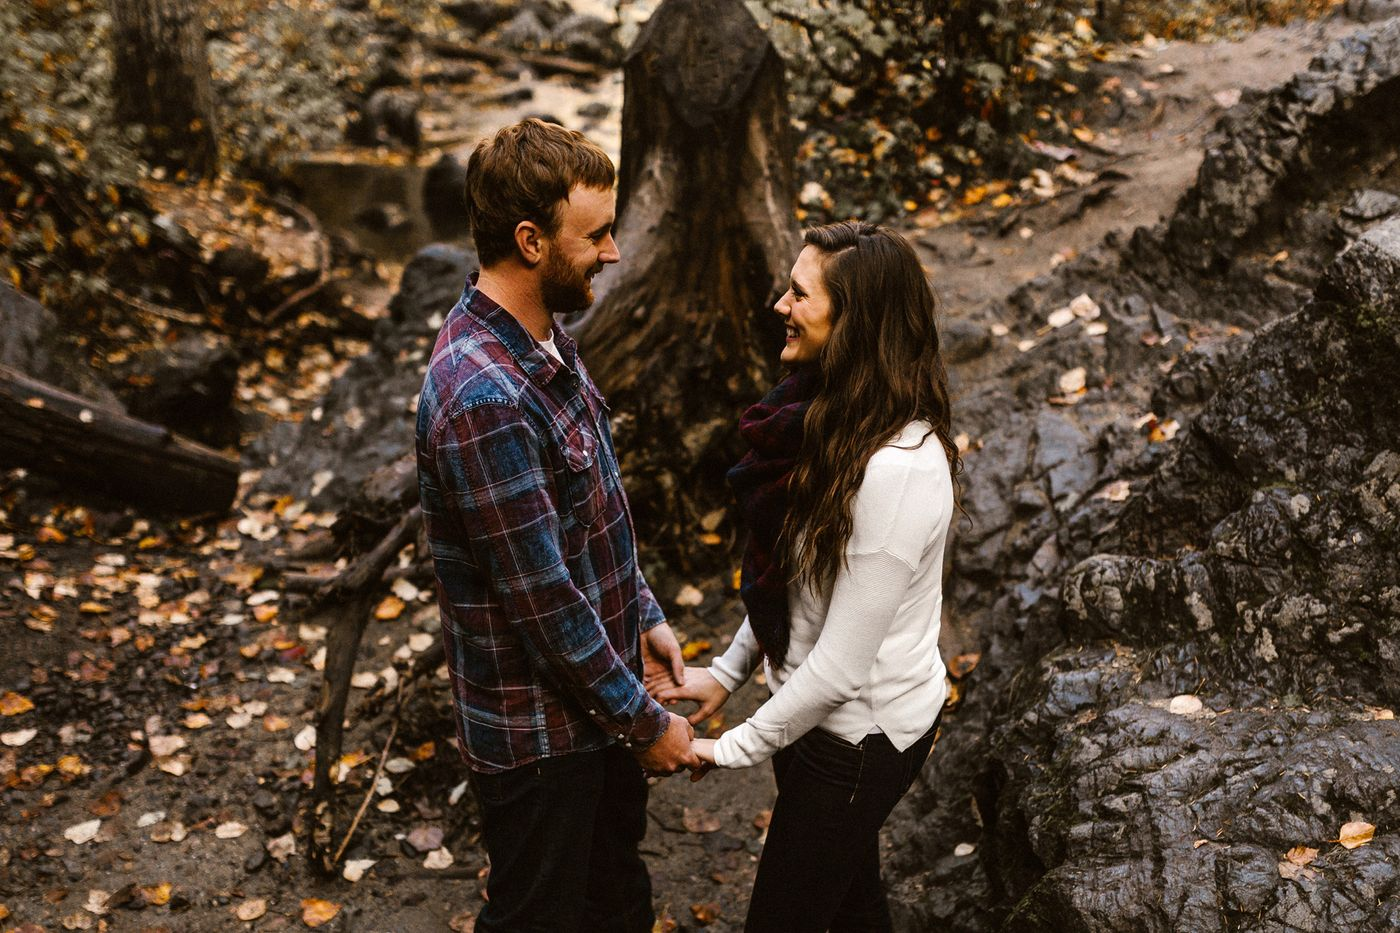 MellissaReceveurPhotography_EngagementQuesnel_Wedding_Photographer_Quesnel_PrinceGeorge_DestinationWeddingPhotographer3.jpg